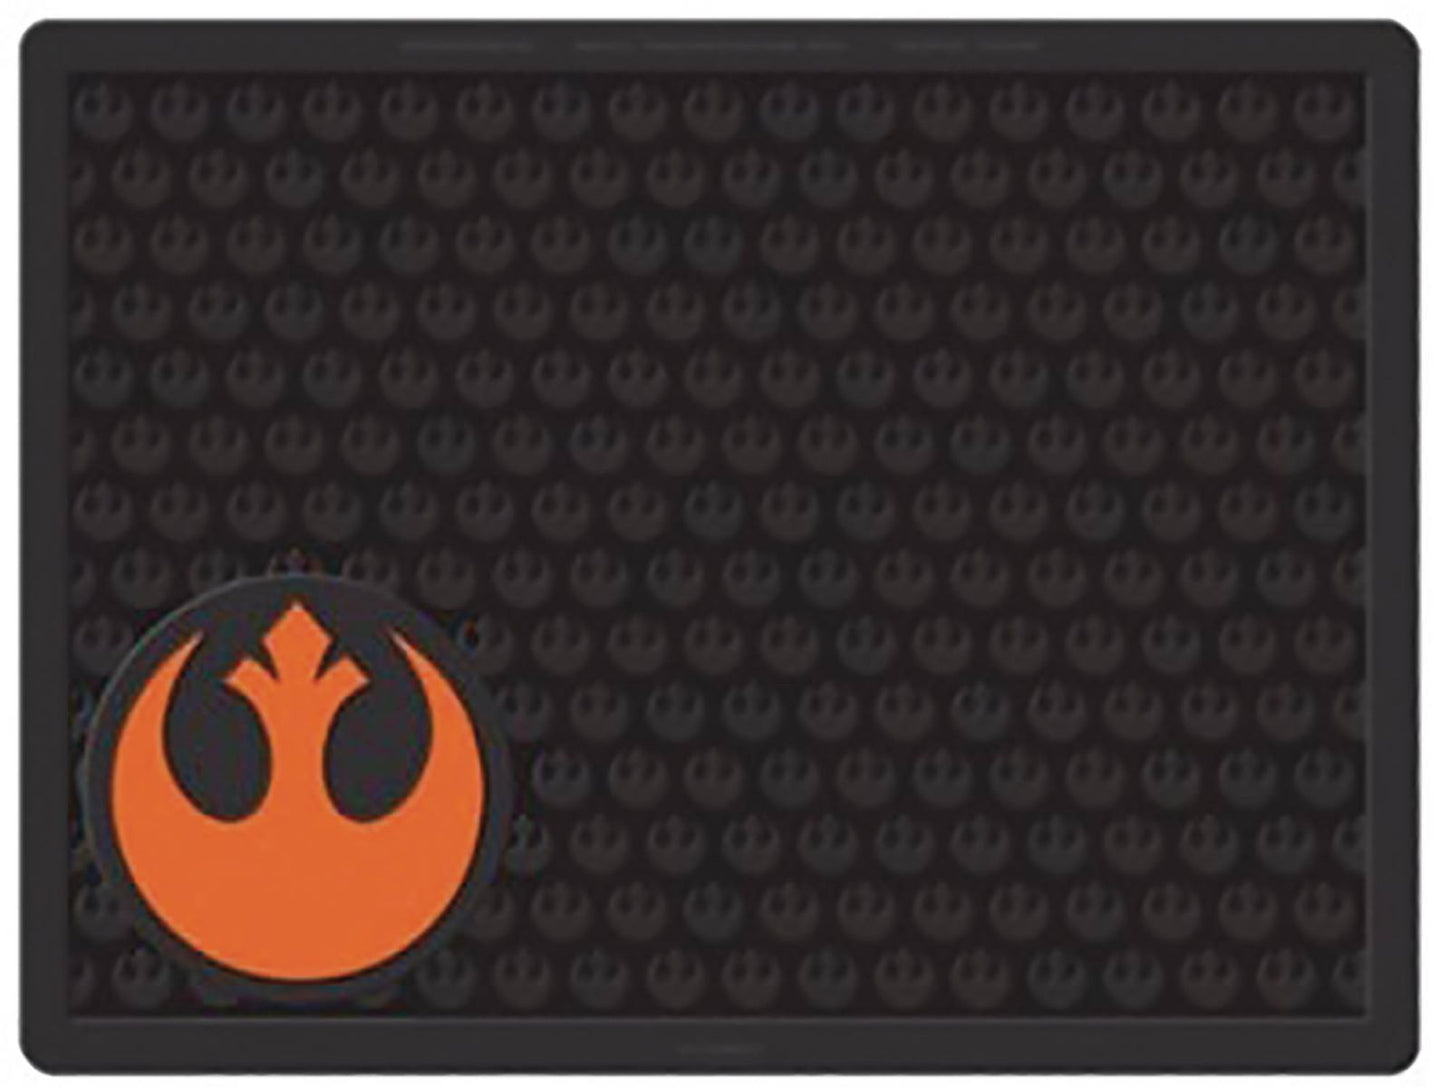 Star Wars Rebel Symbol Welcome Mat